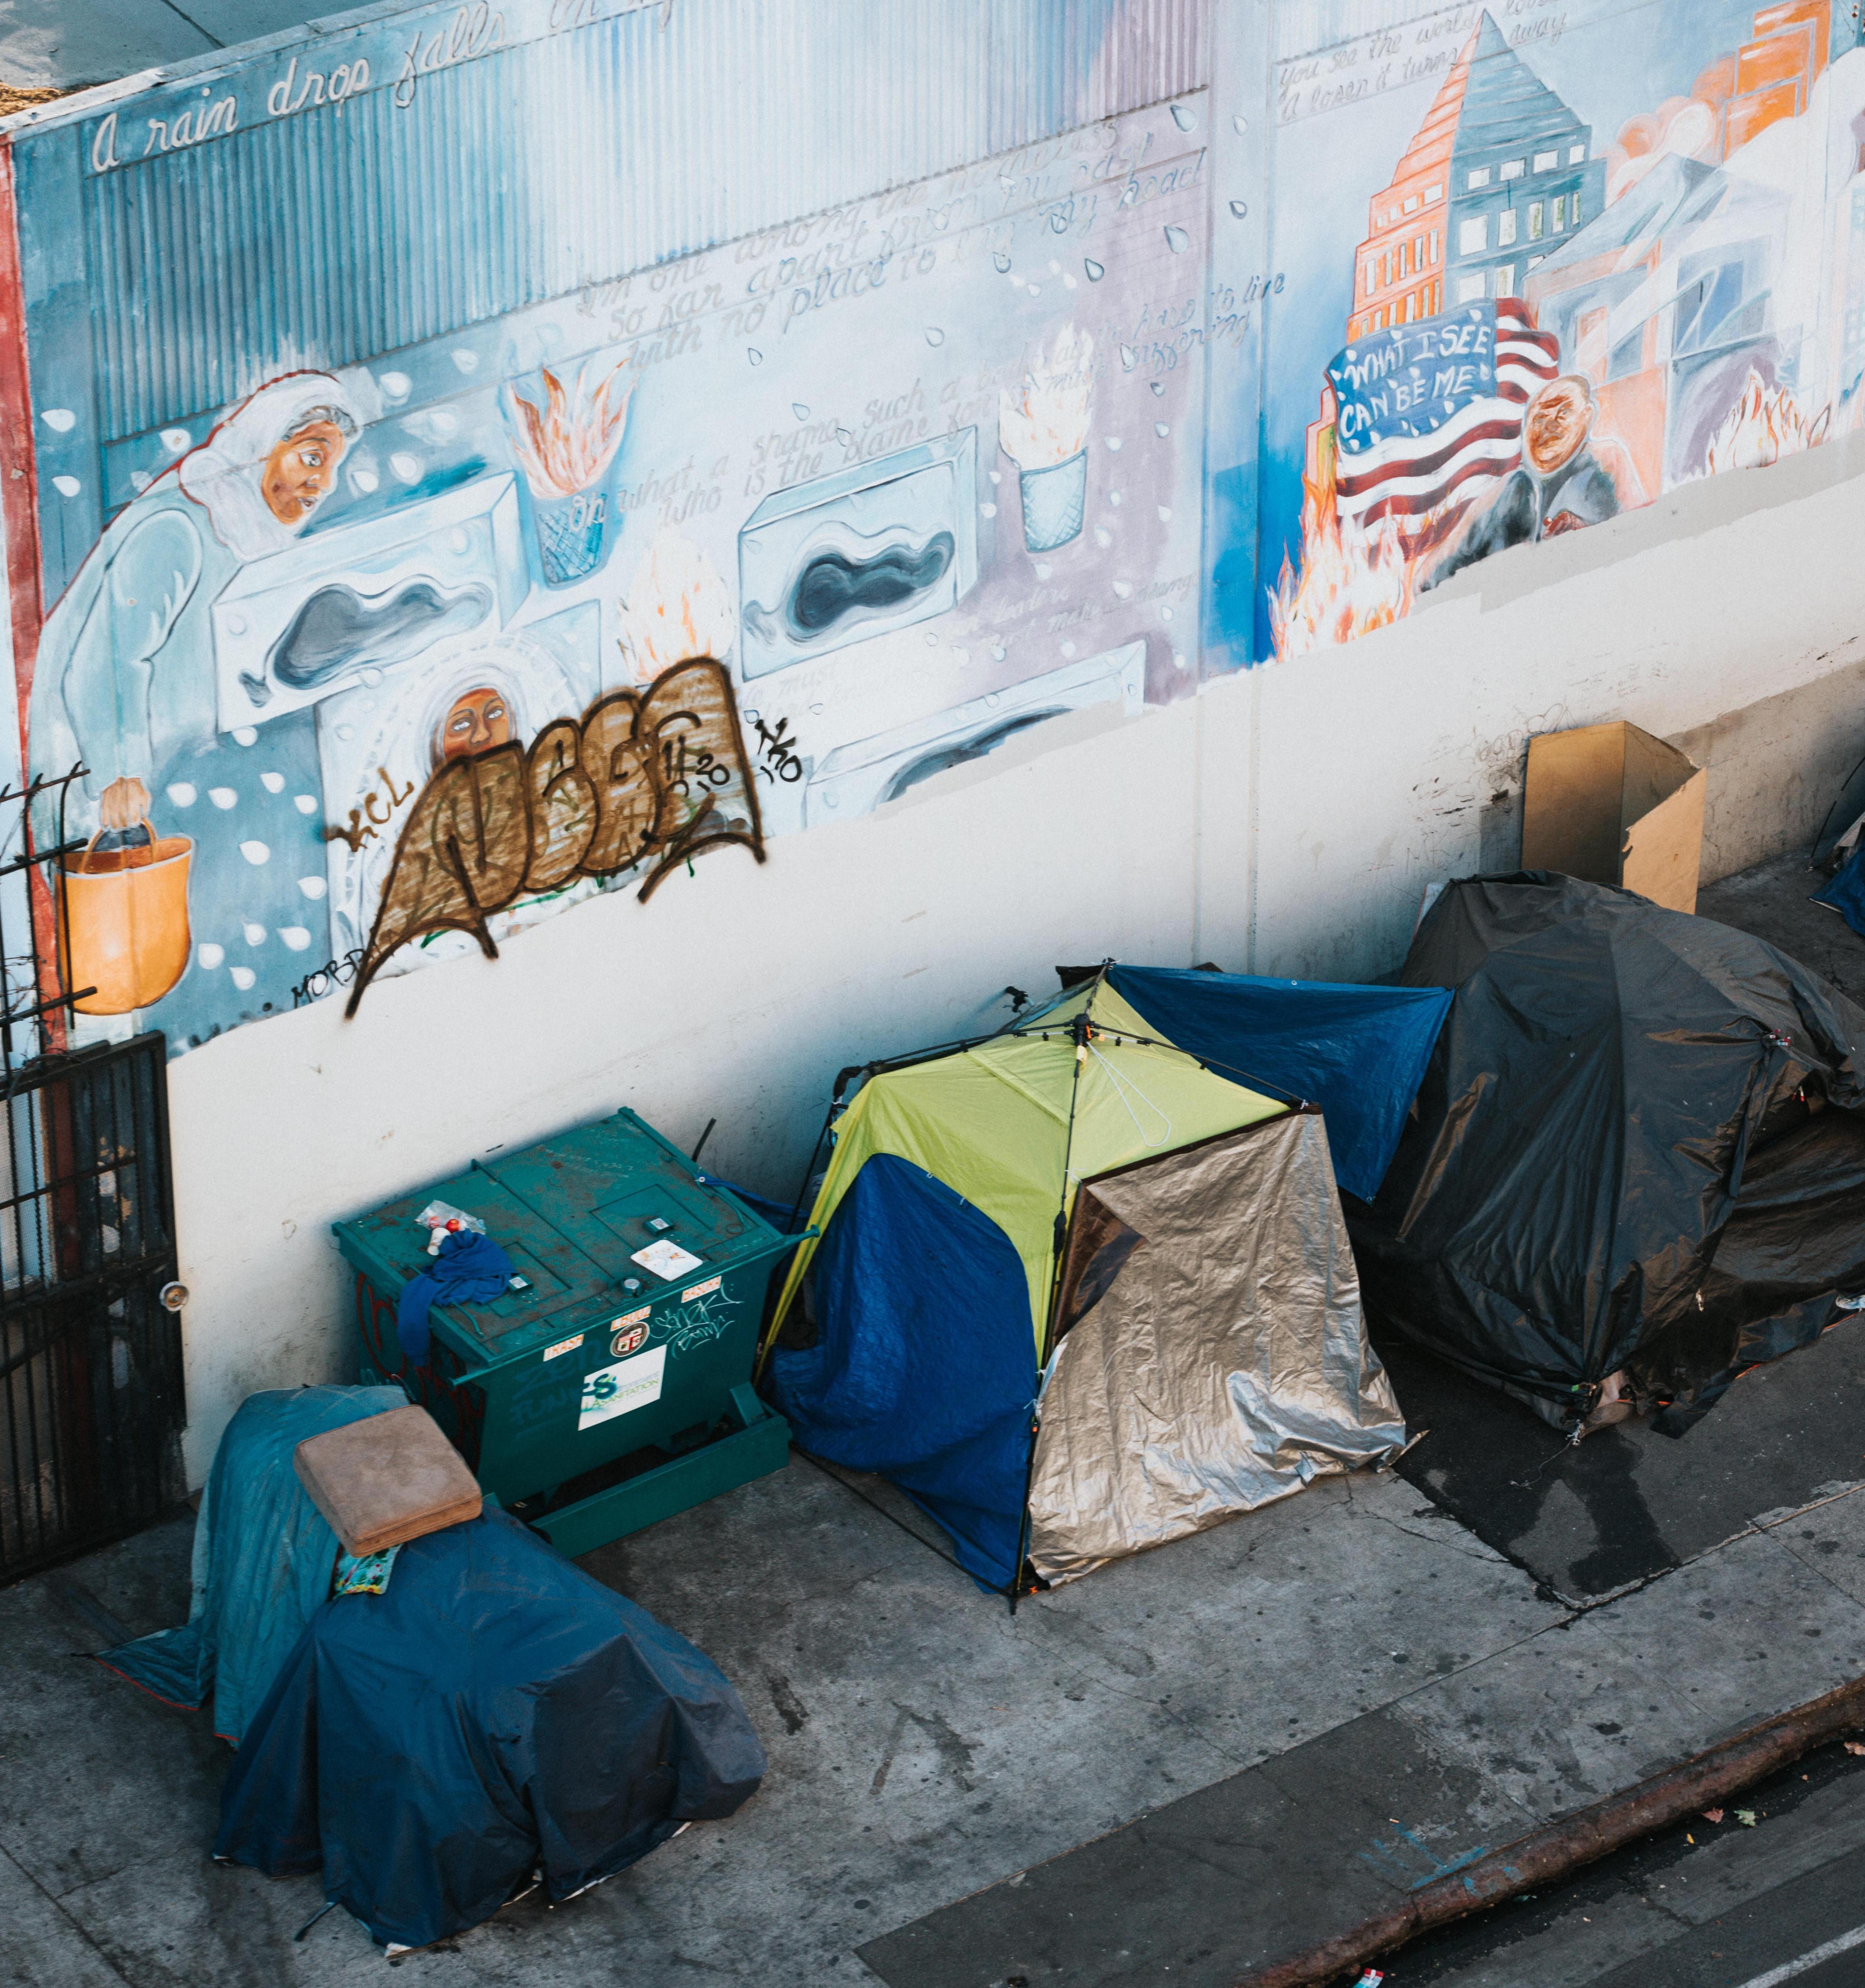 Homeless people living in tents